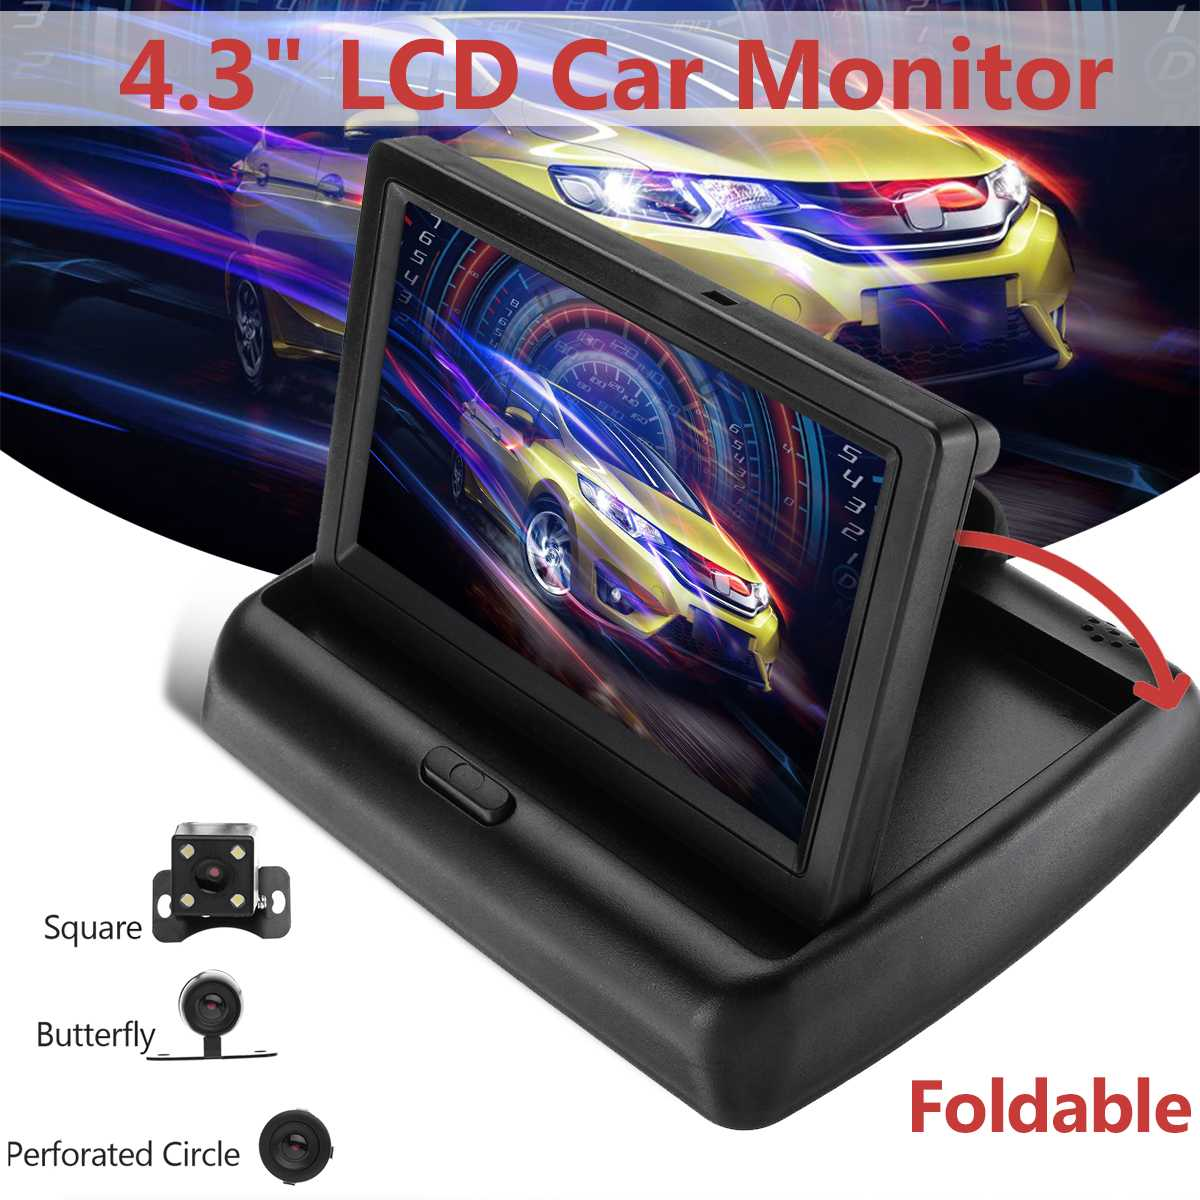 4.3 Inch TFT LCD Car Monitor Foldable Monitor Display Reverse Camera Parking System For Car Rearview Monitors